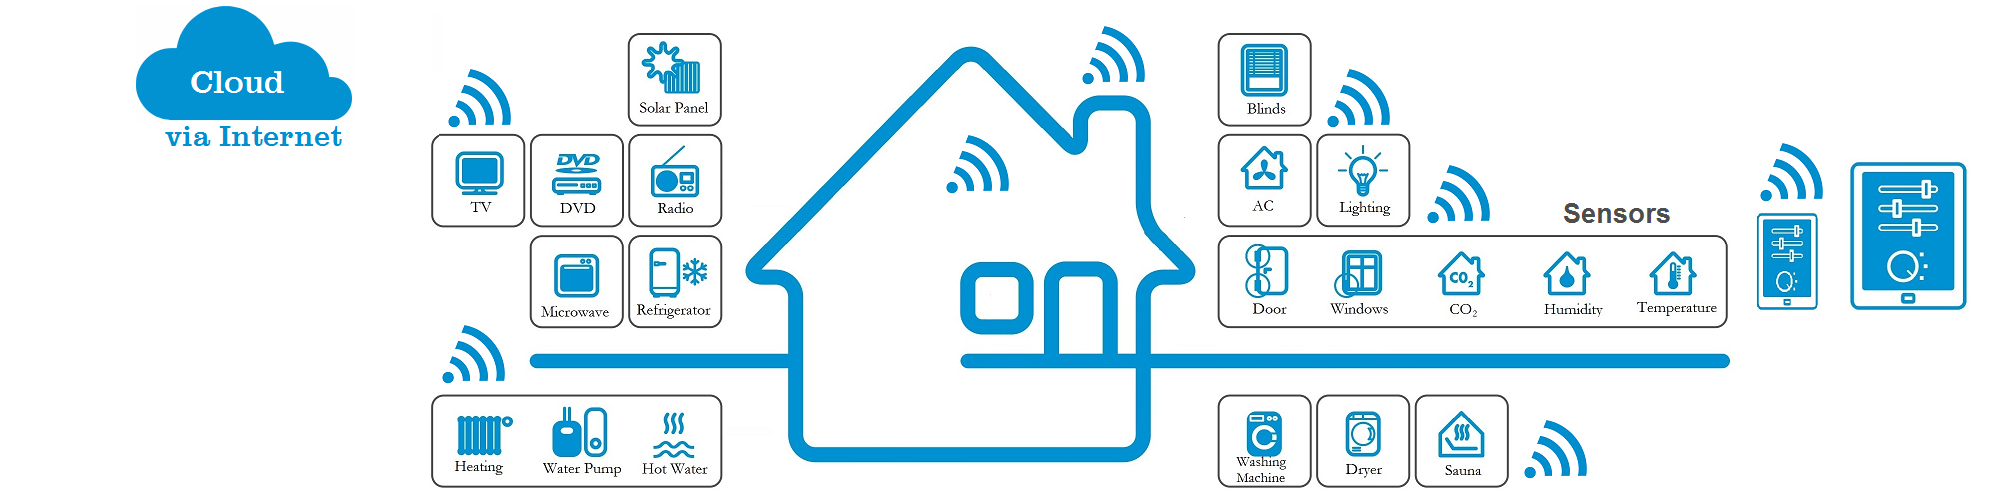 http://smarthome.com.pk/wp-content/uploads/2015/03/Banner11.png